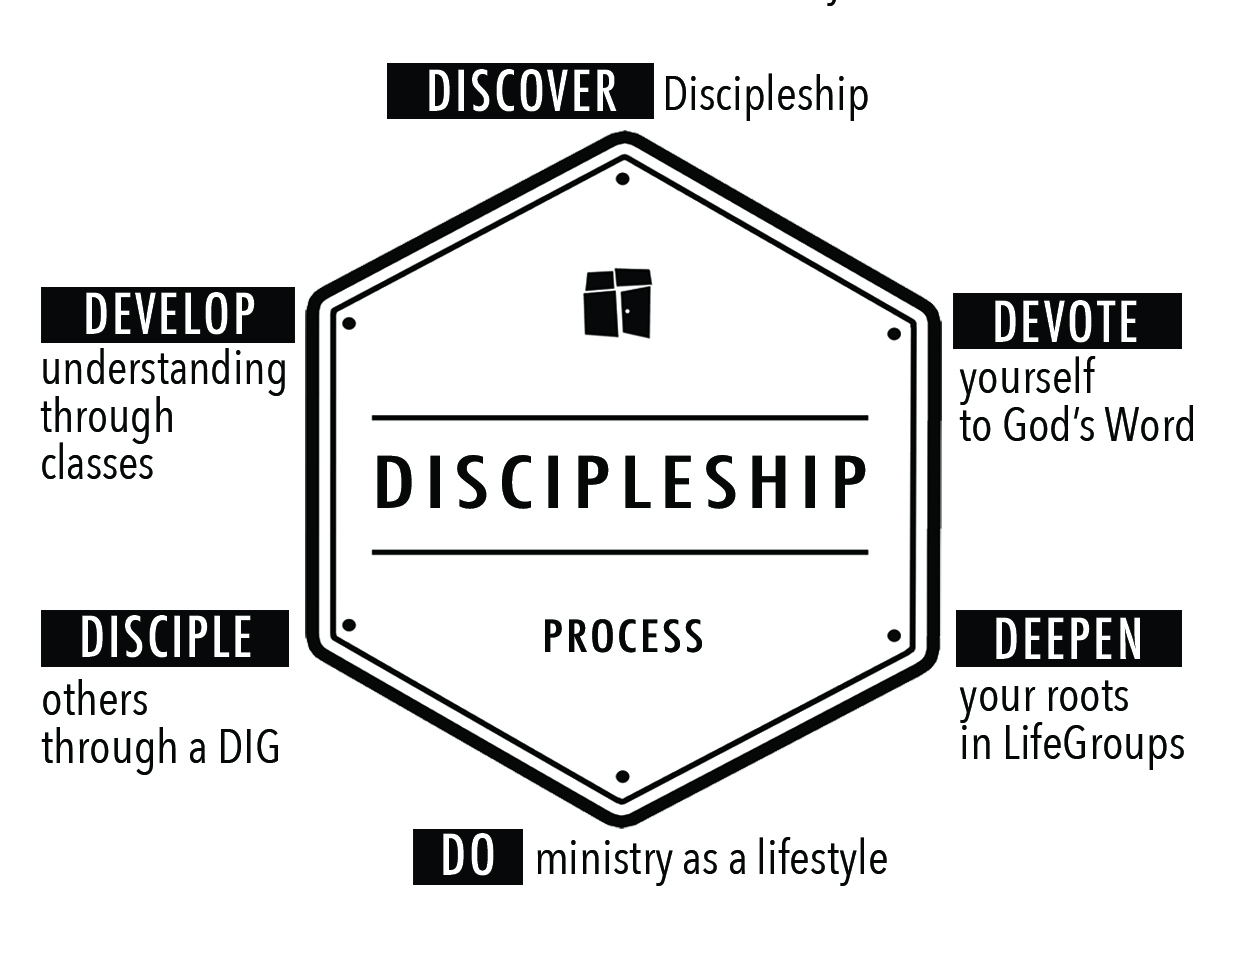 real transformation is possible as we follow jesus throughout the process  of discipleship